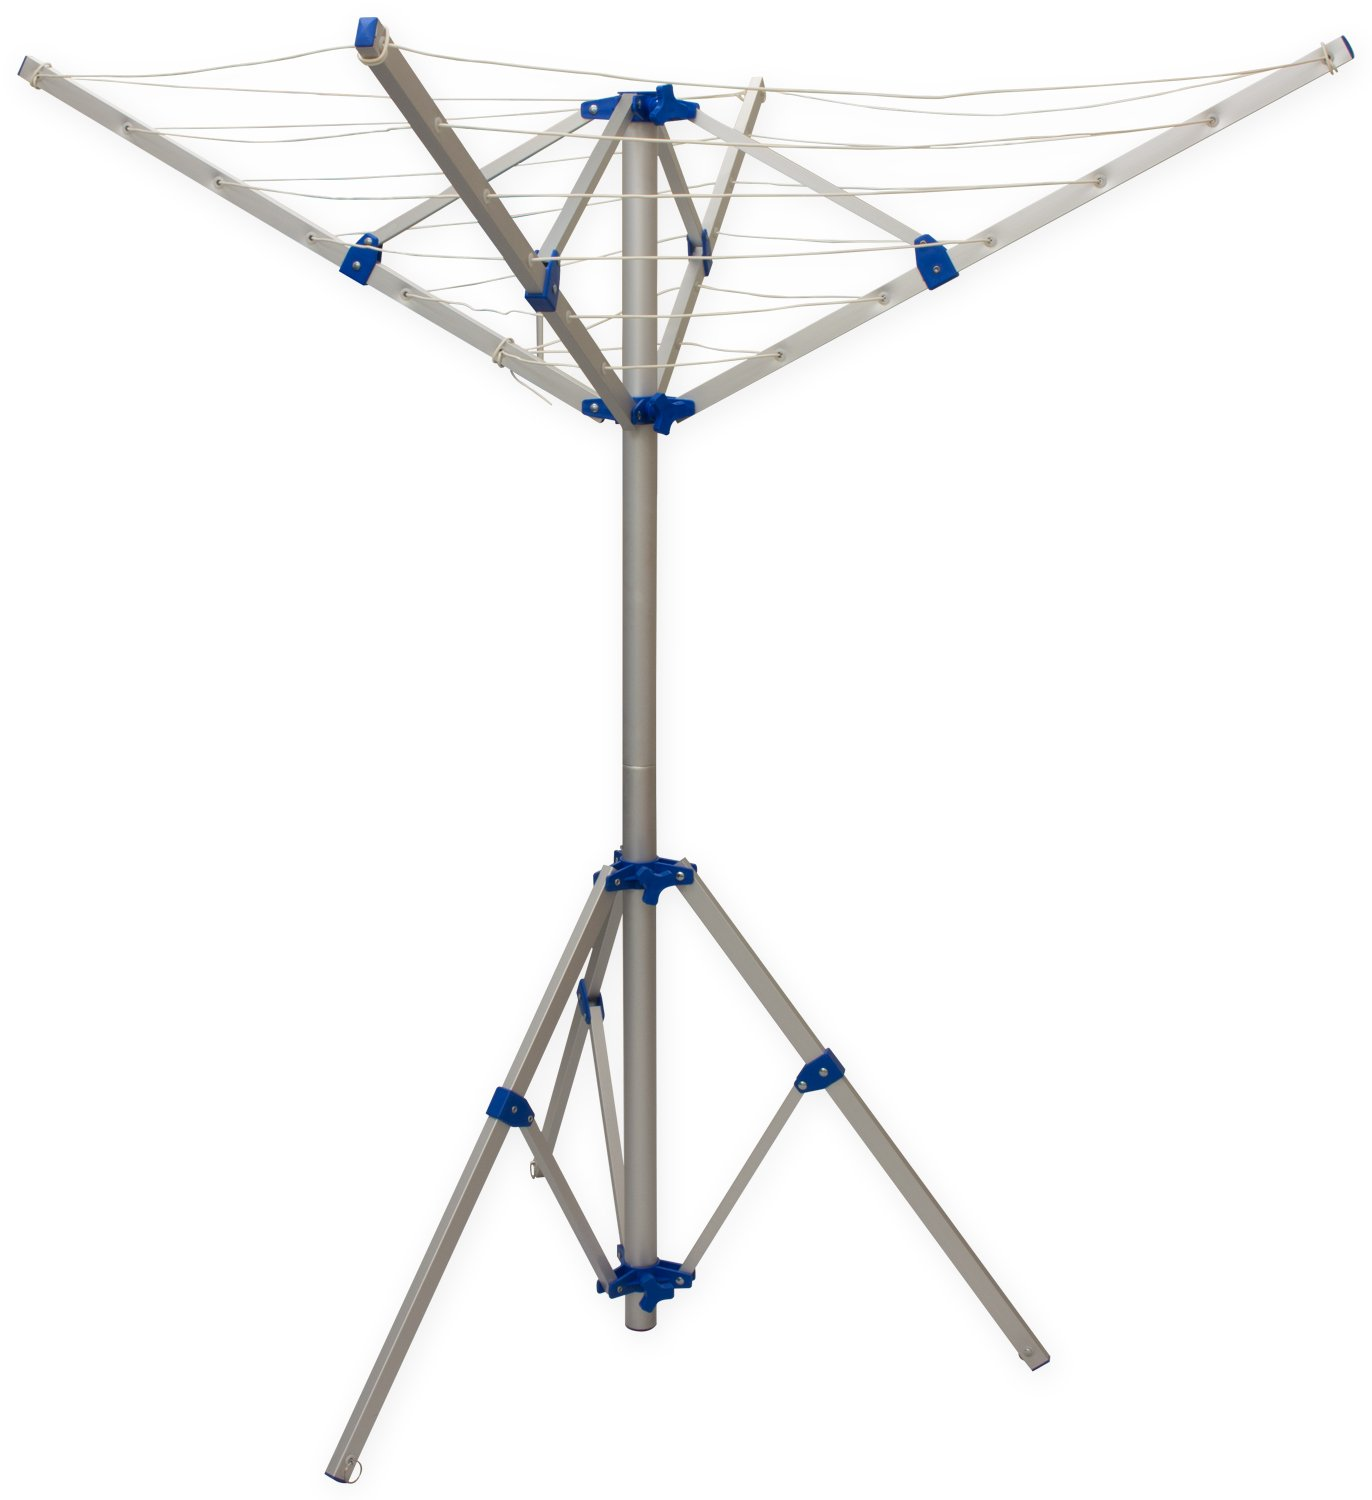 Andes 4 Arm Aluminium Rotary Camping Clothes Airer 16m Washing Line Drying Rack